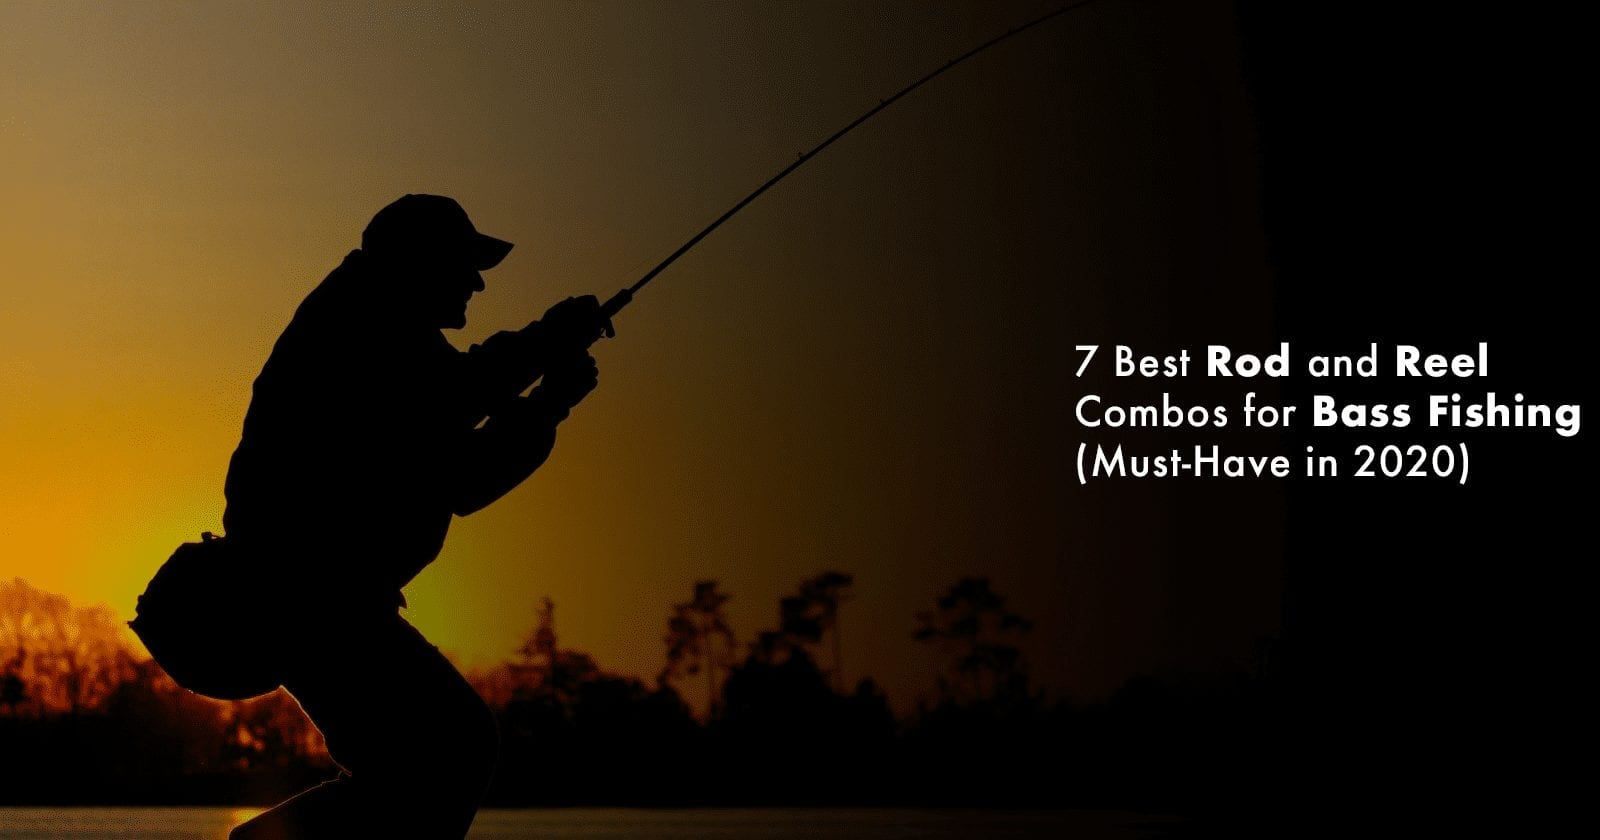 Rod and Reel Combos for Bass Fishing